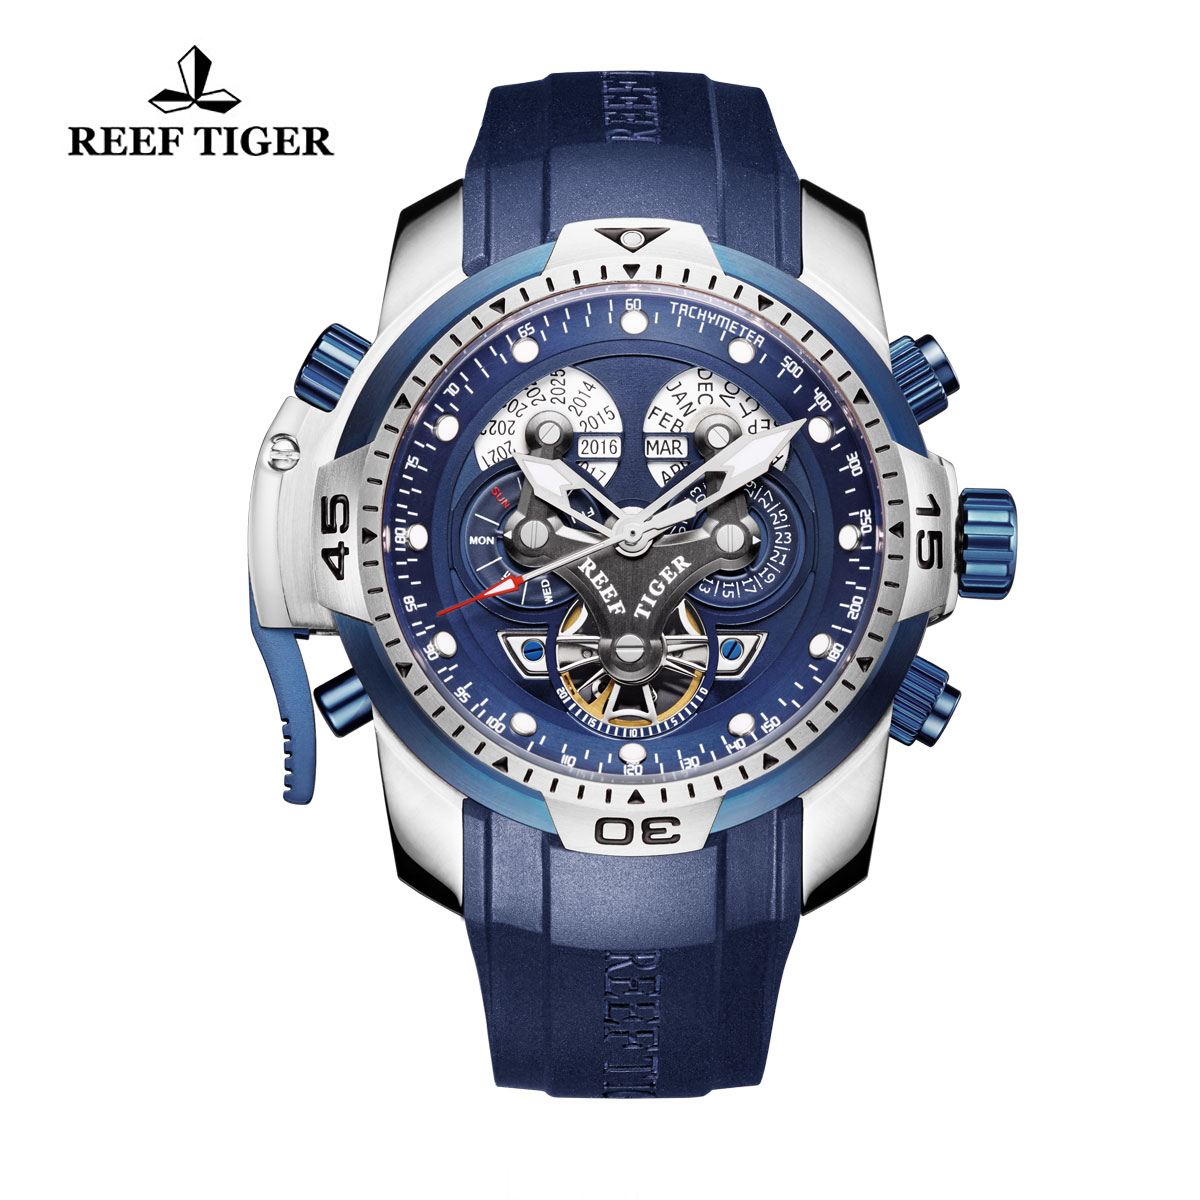 Reef Tiger Concept Sport Watches Automatic Watch Steel Case Blue Rubber RGA3503-YLLB